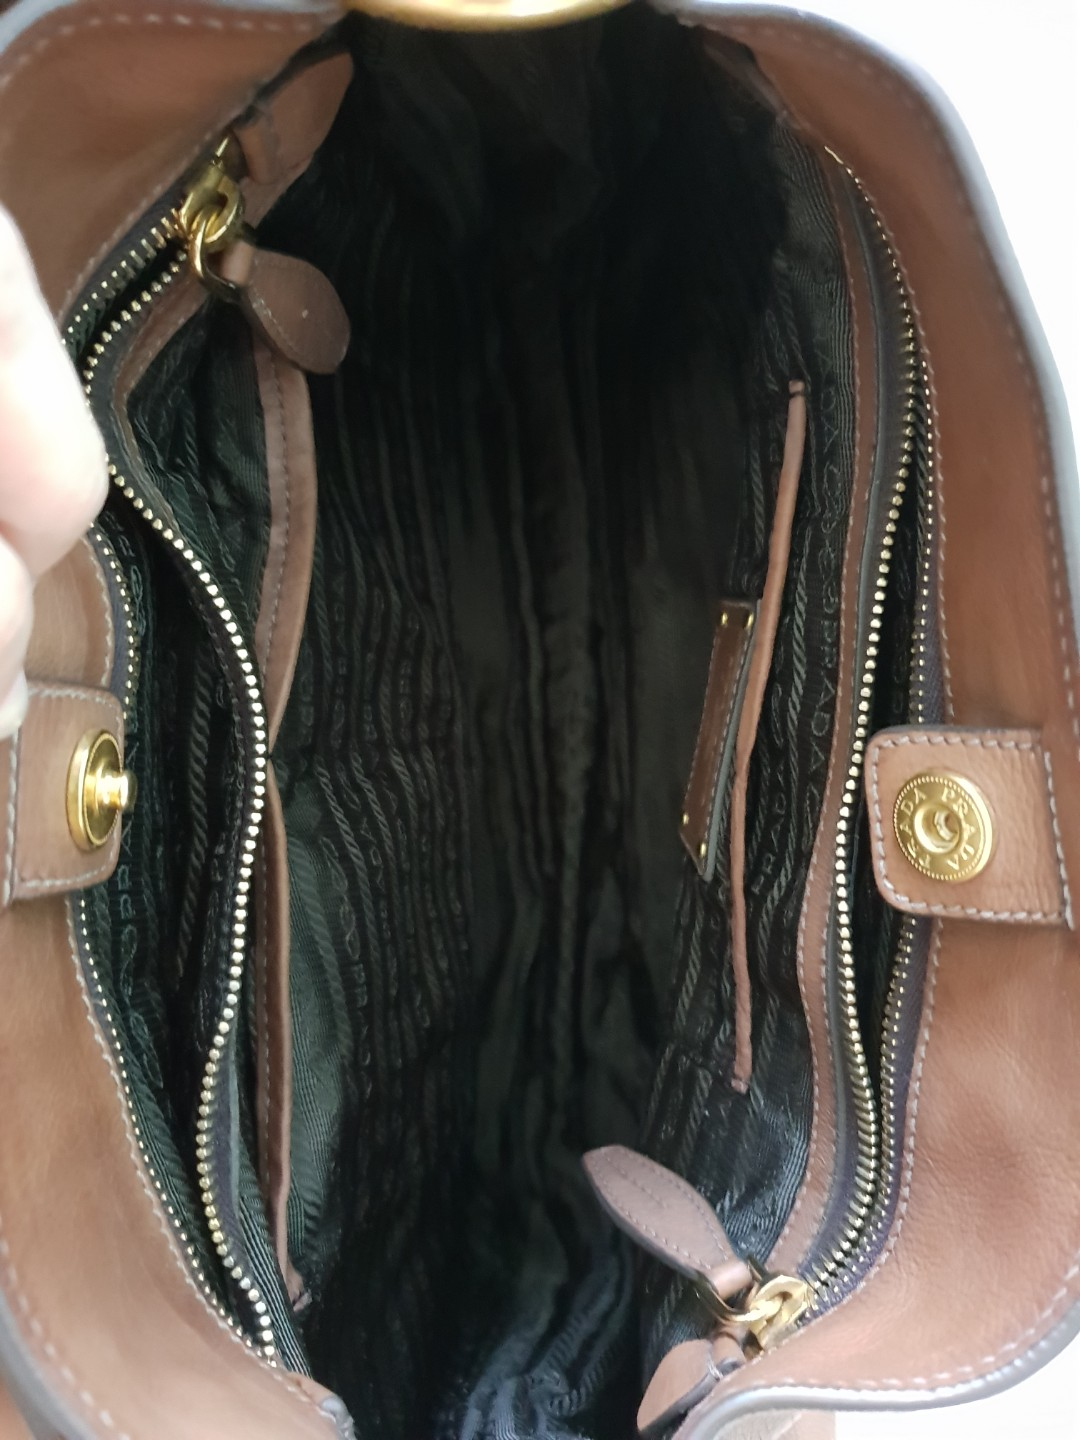 f58dc55d47 ... order preloved authentic prada sacca glace calf zippers shoulder bag  argilla luxury bags wallets handbags on